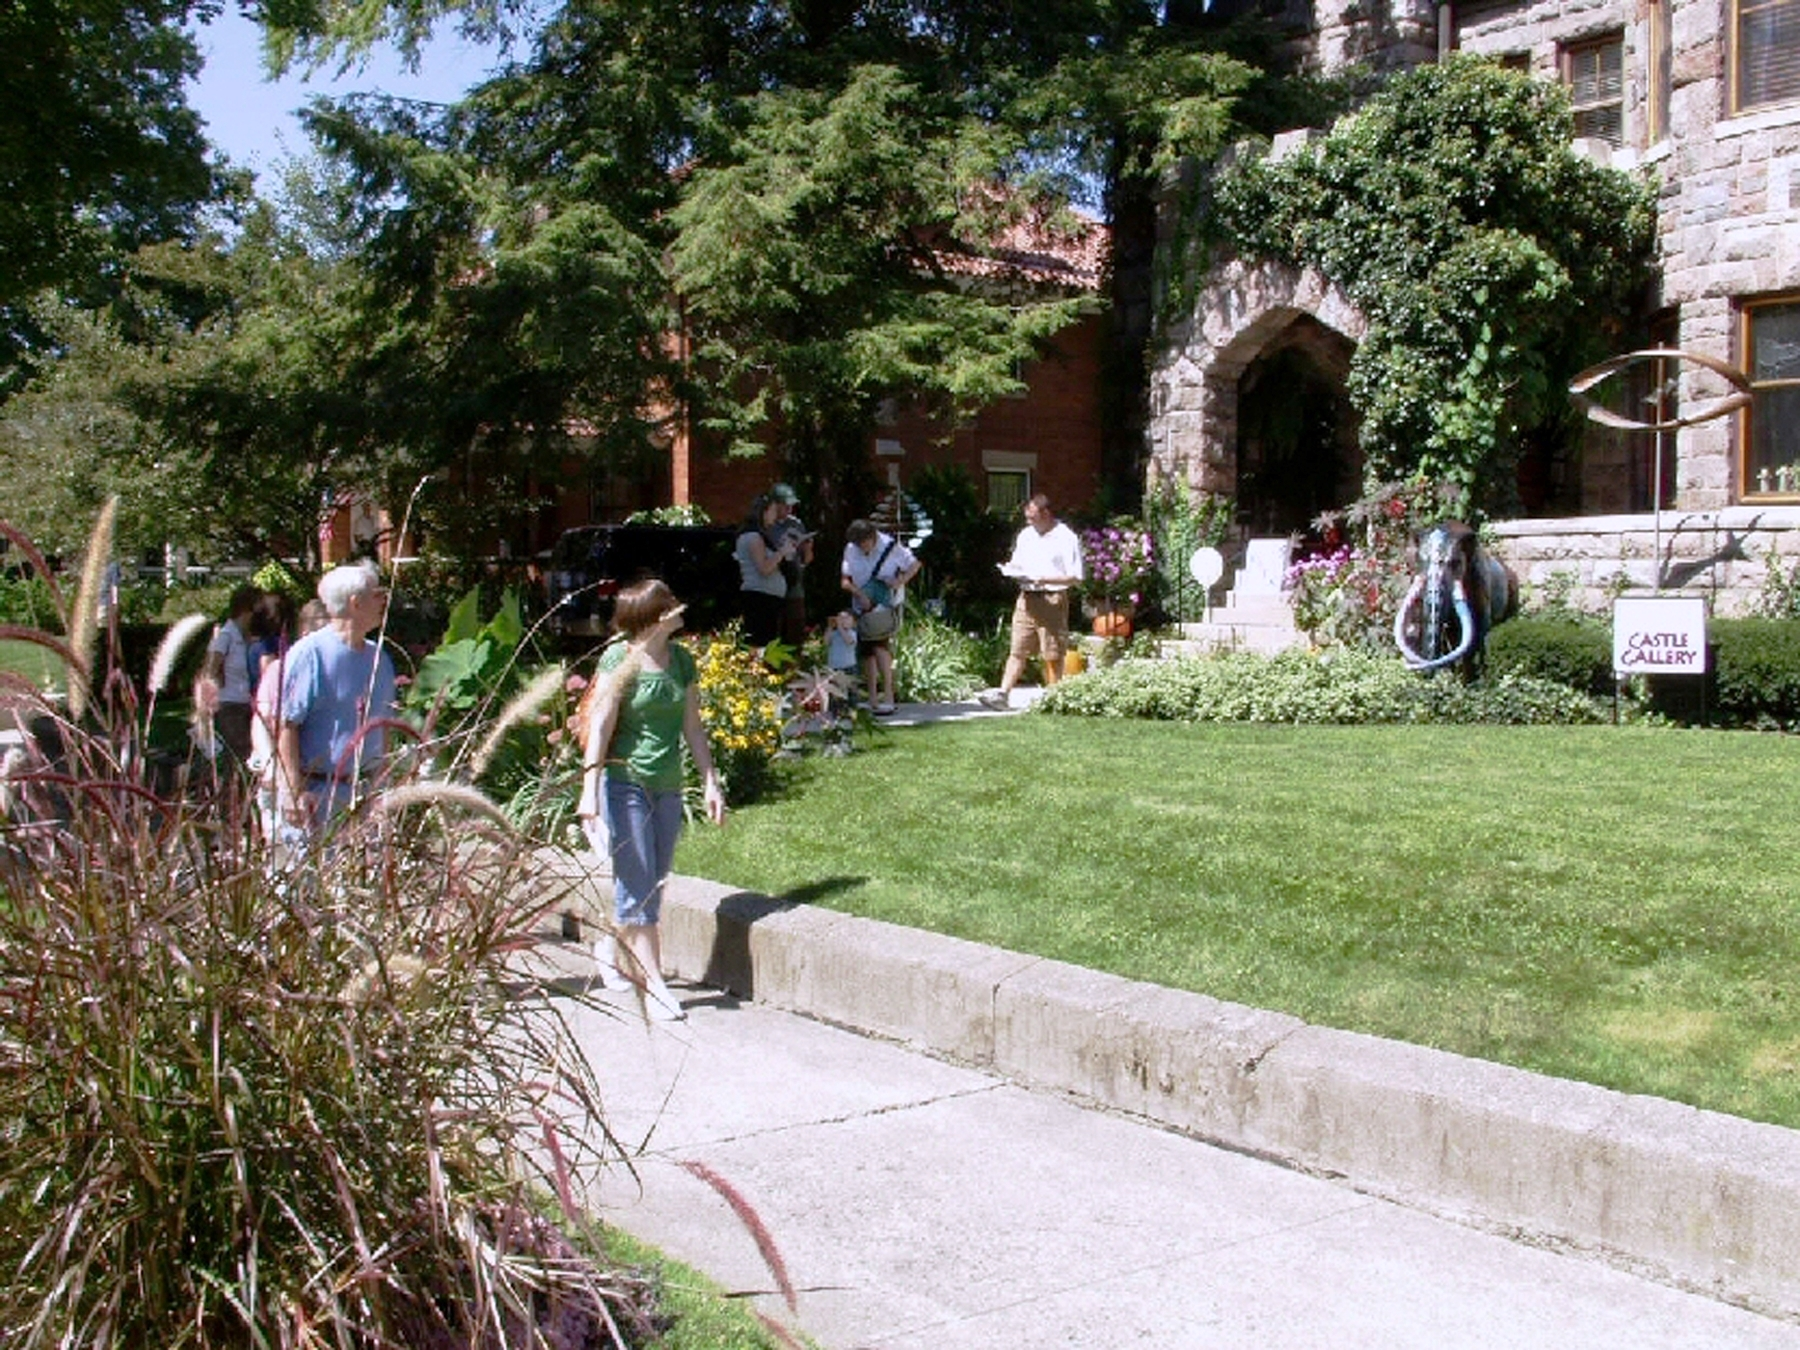 Participants enjoy an Historic Home and Garden Tour in Fort Wayne, Indiana's West Central Neighborhood.